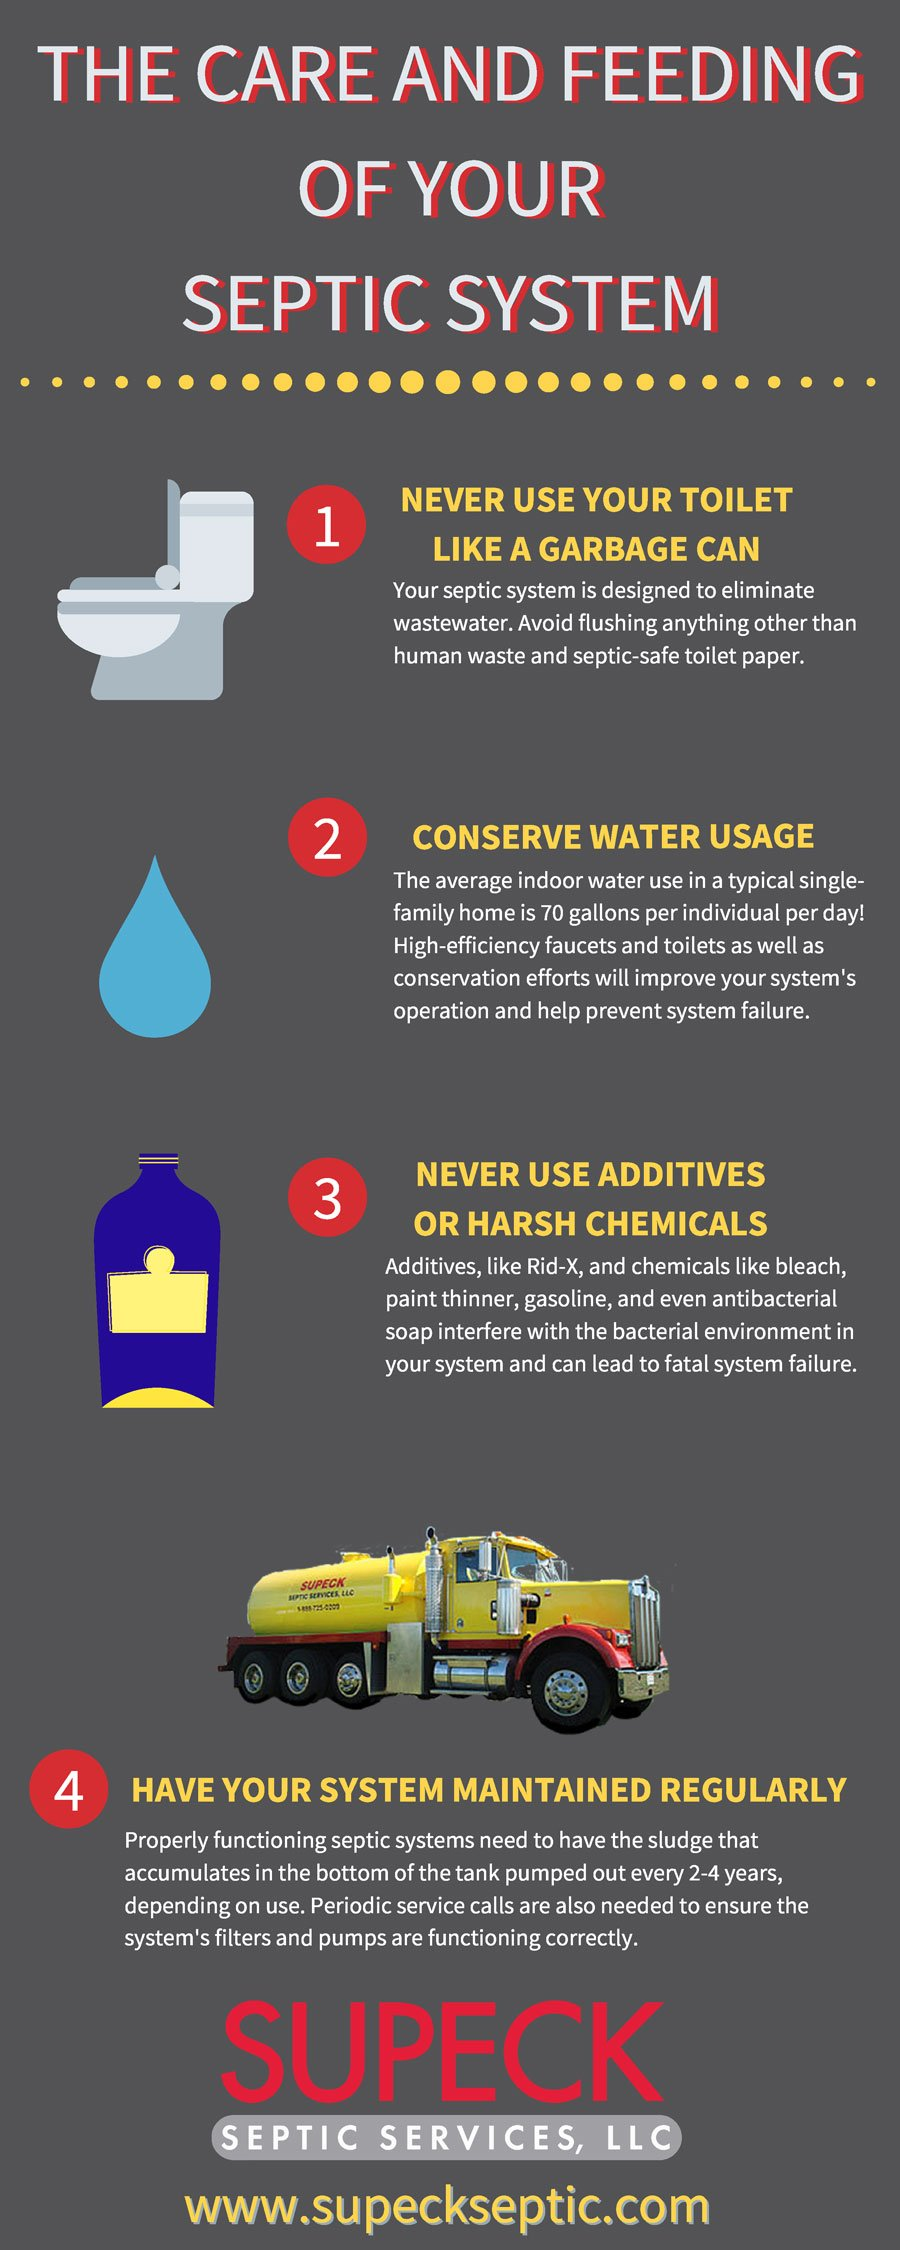 Infographic on Care and Feeding of Your Septic System